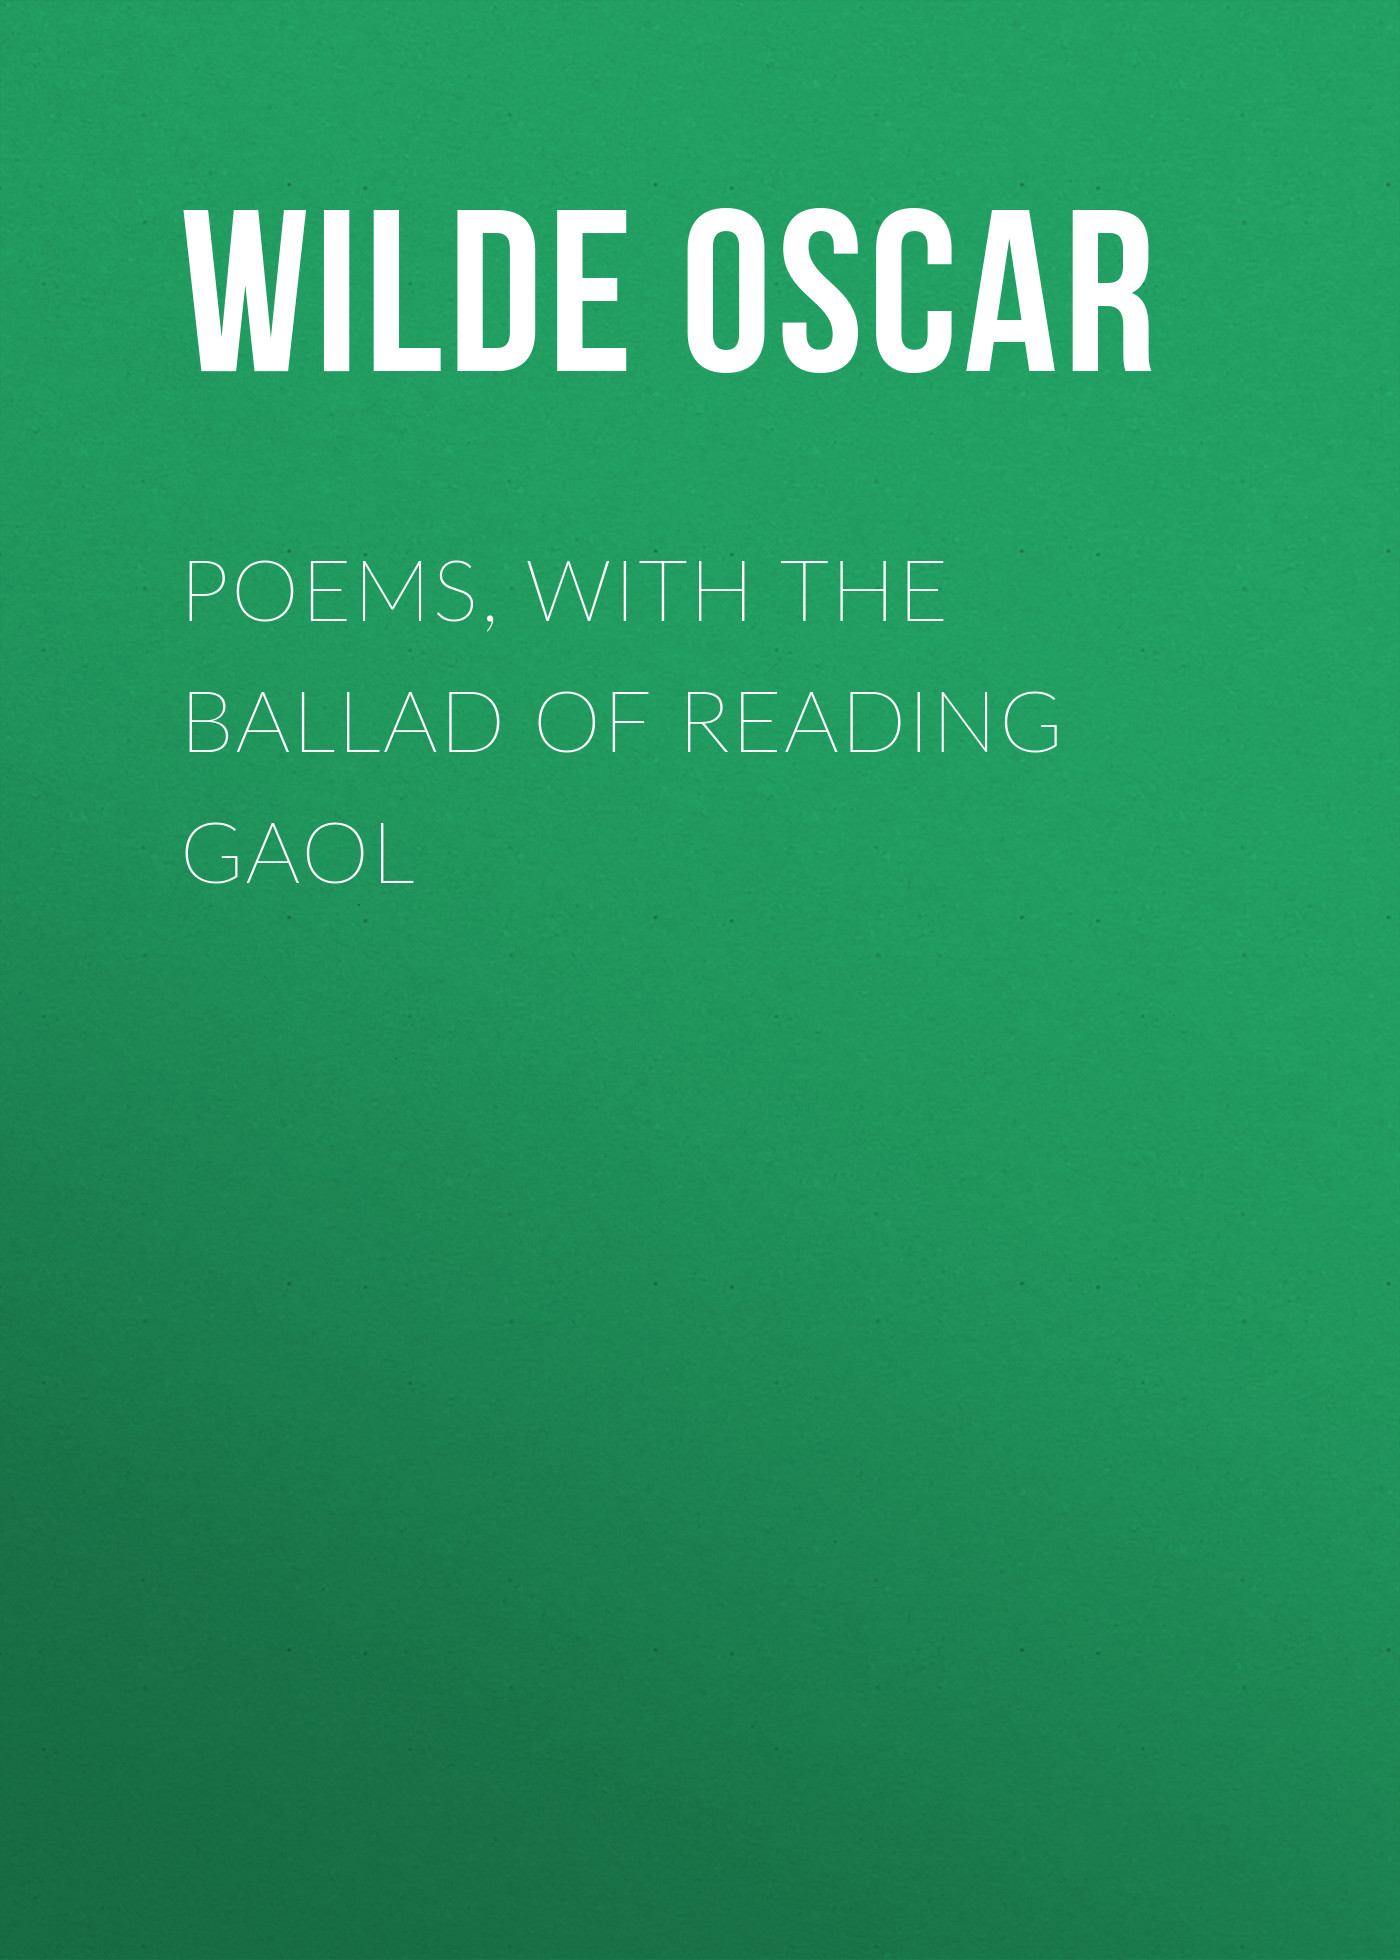 Оскар Уайльд Poems, with The Ballad of Reading Gaol wilde oscar de profundis the ballad of reading gaol